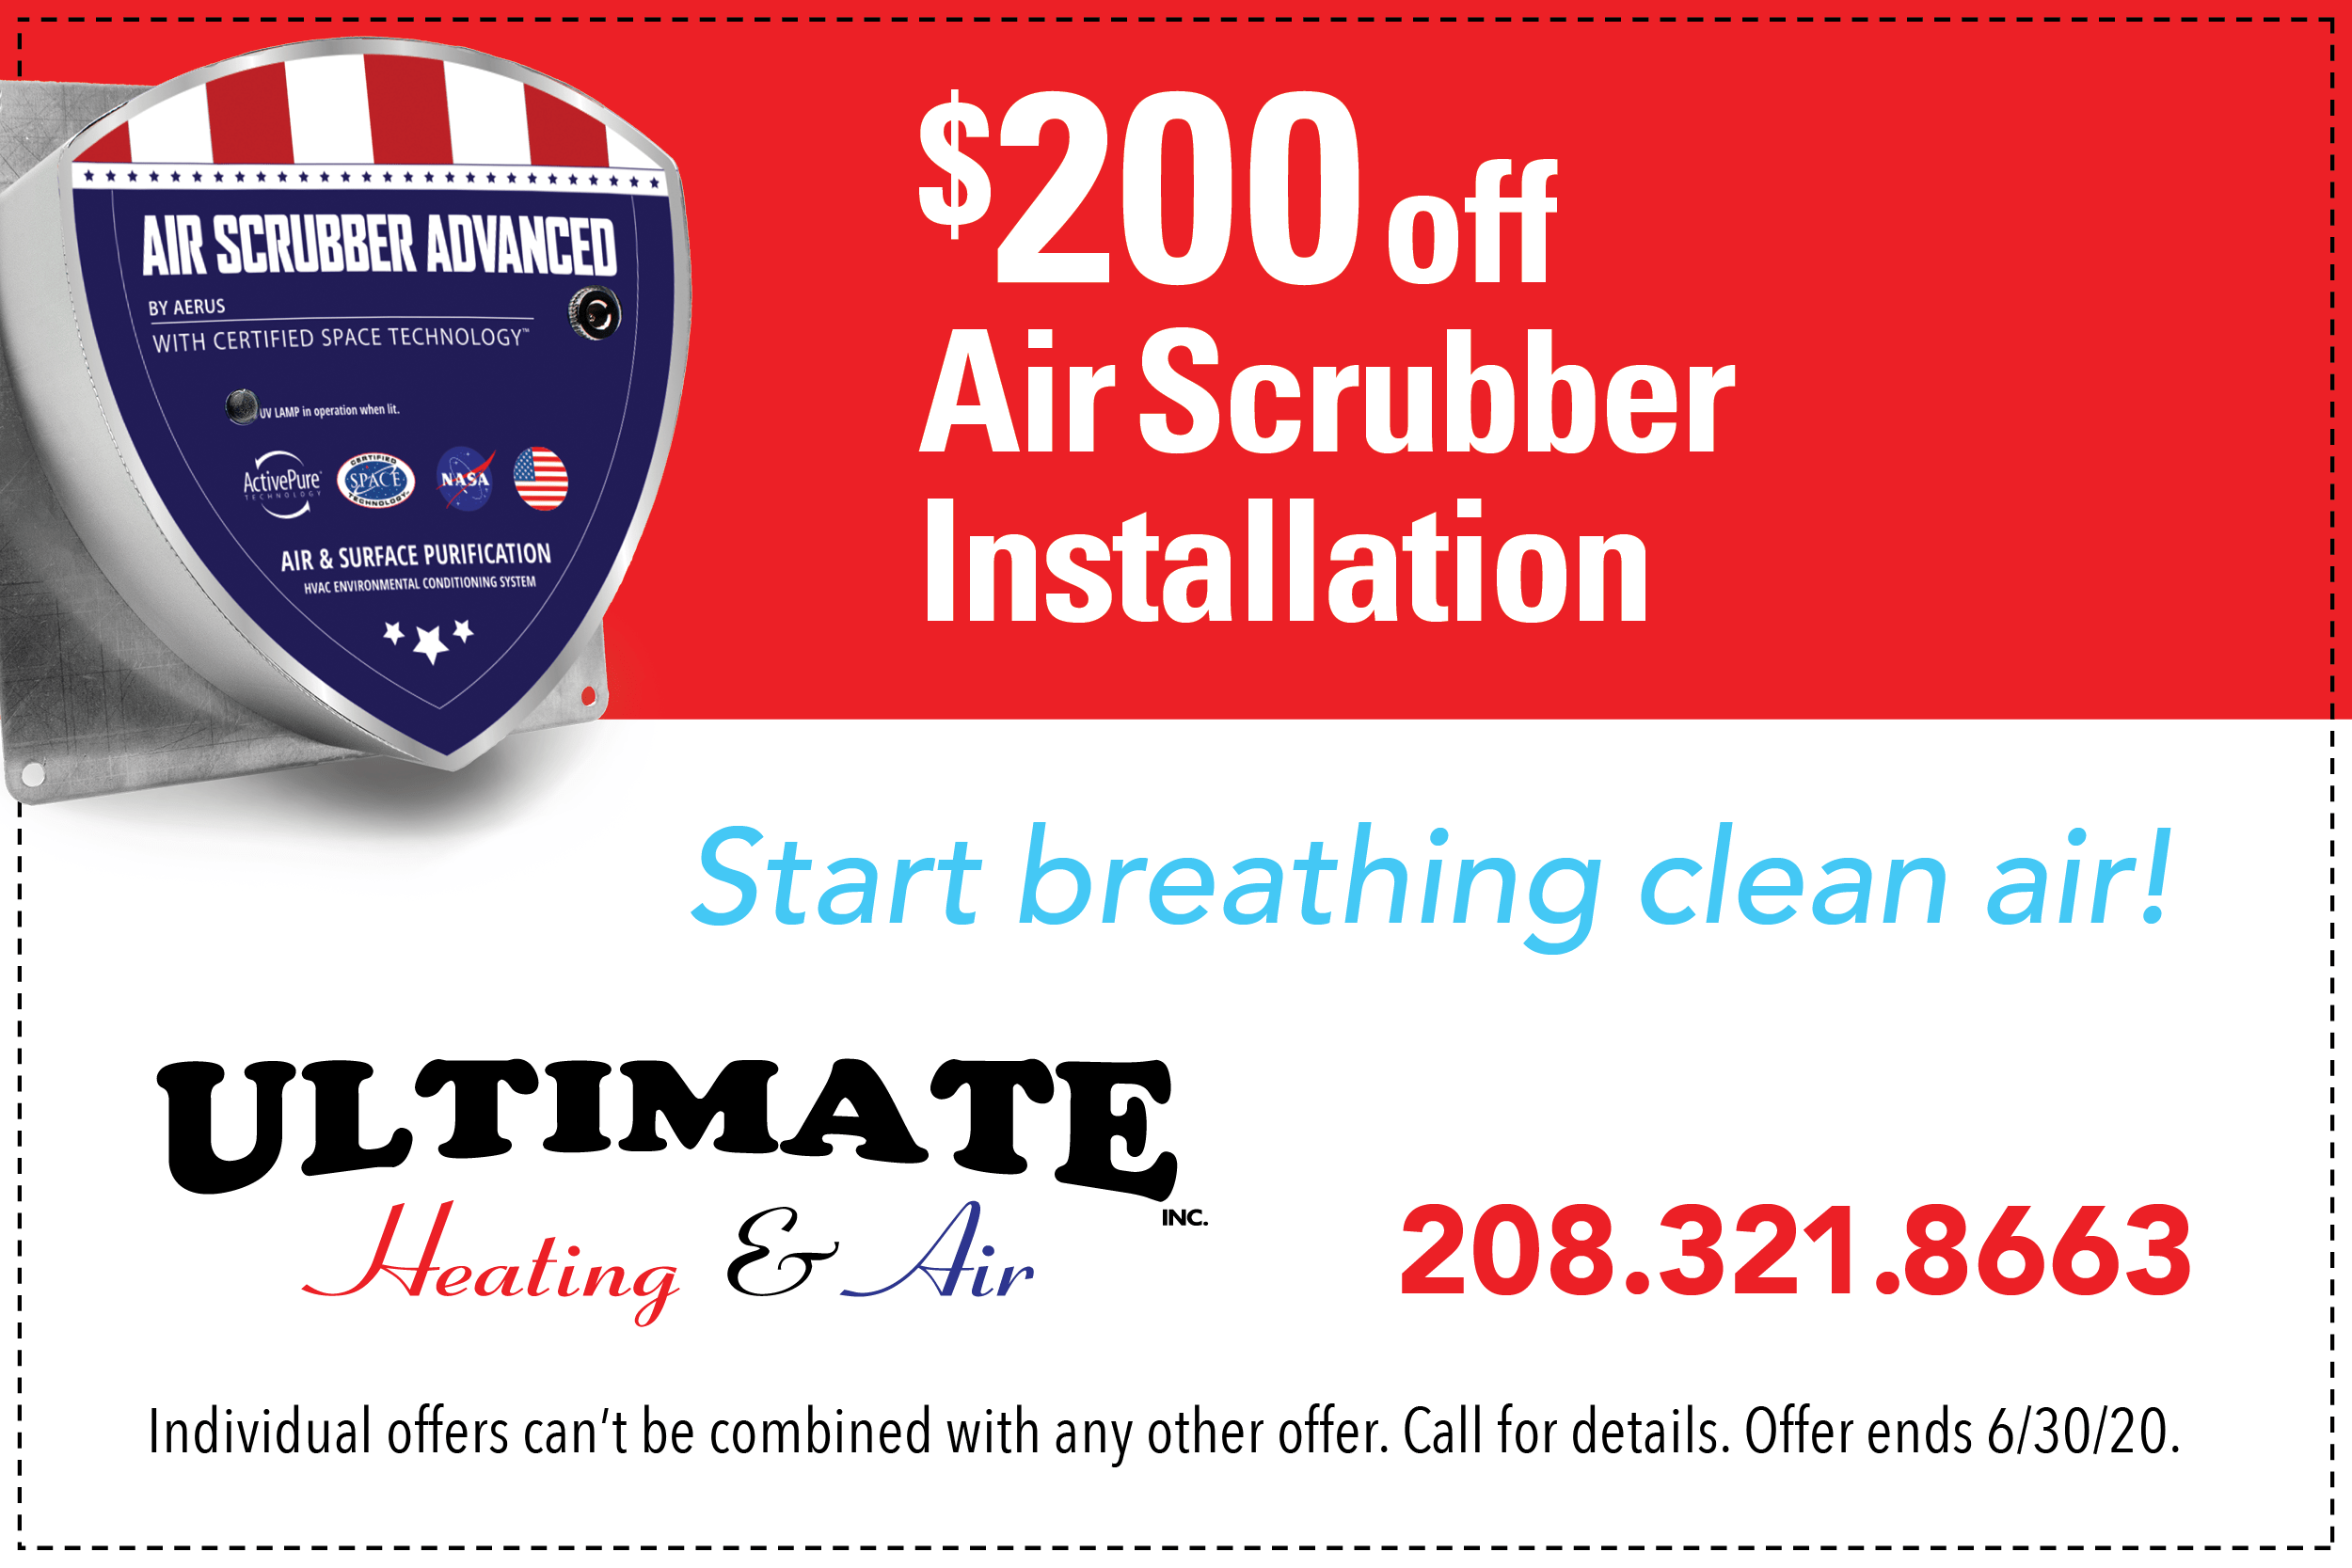 ULT scrubber-coupon.